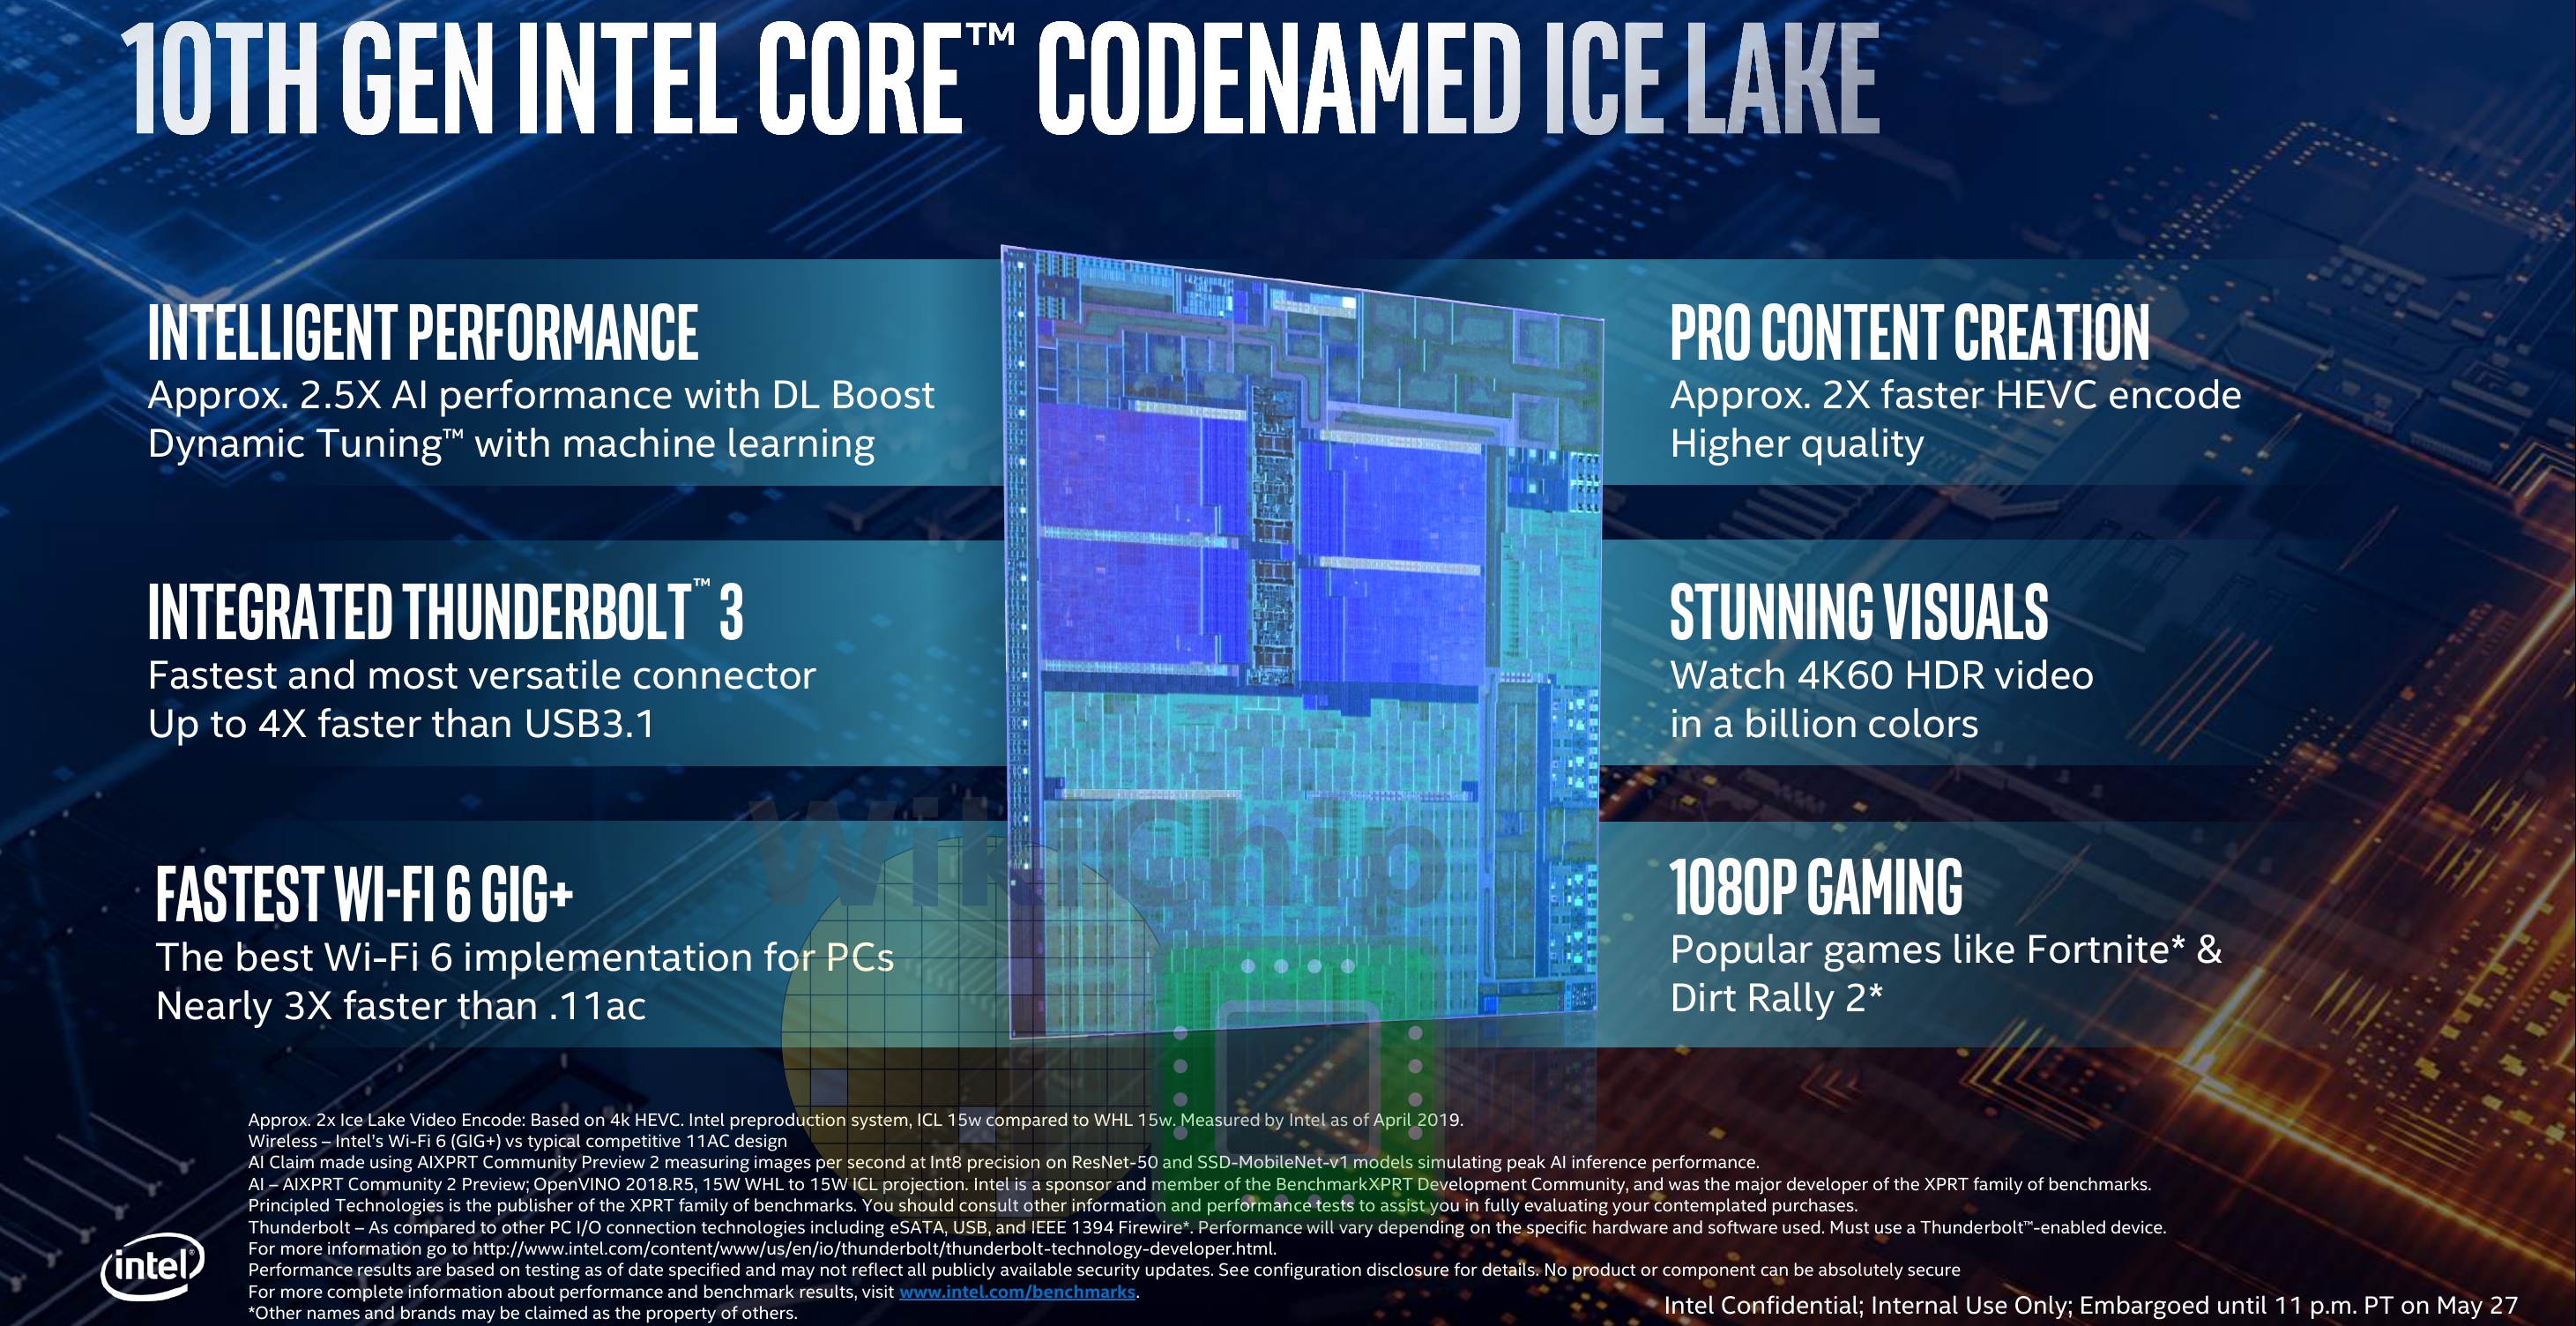 Intel Announces 10th Gen Core Processors Based On 10nm Ice Lake, Now